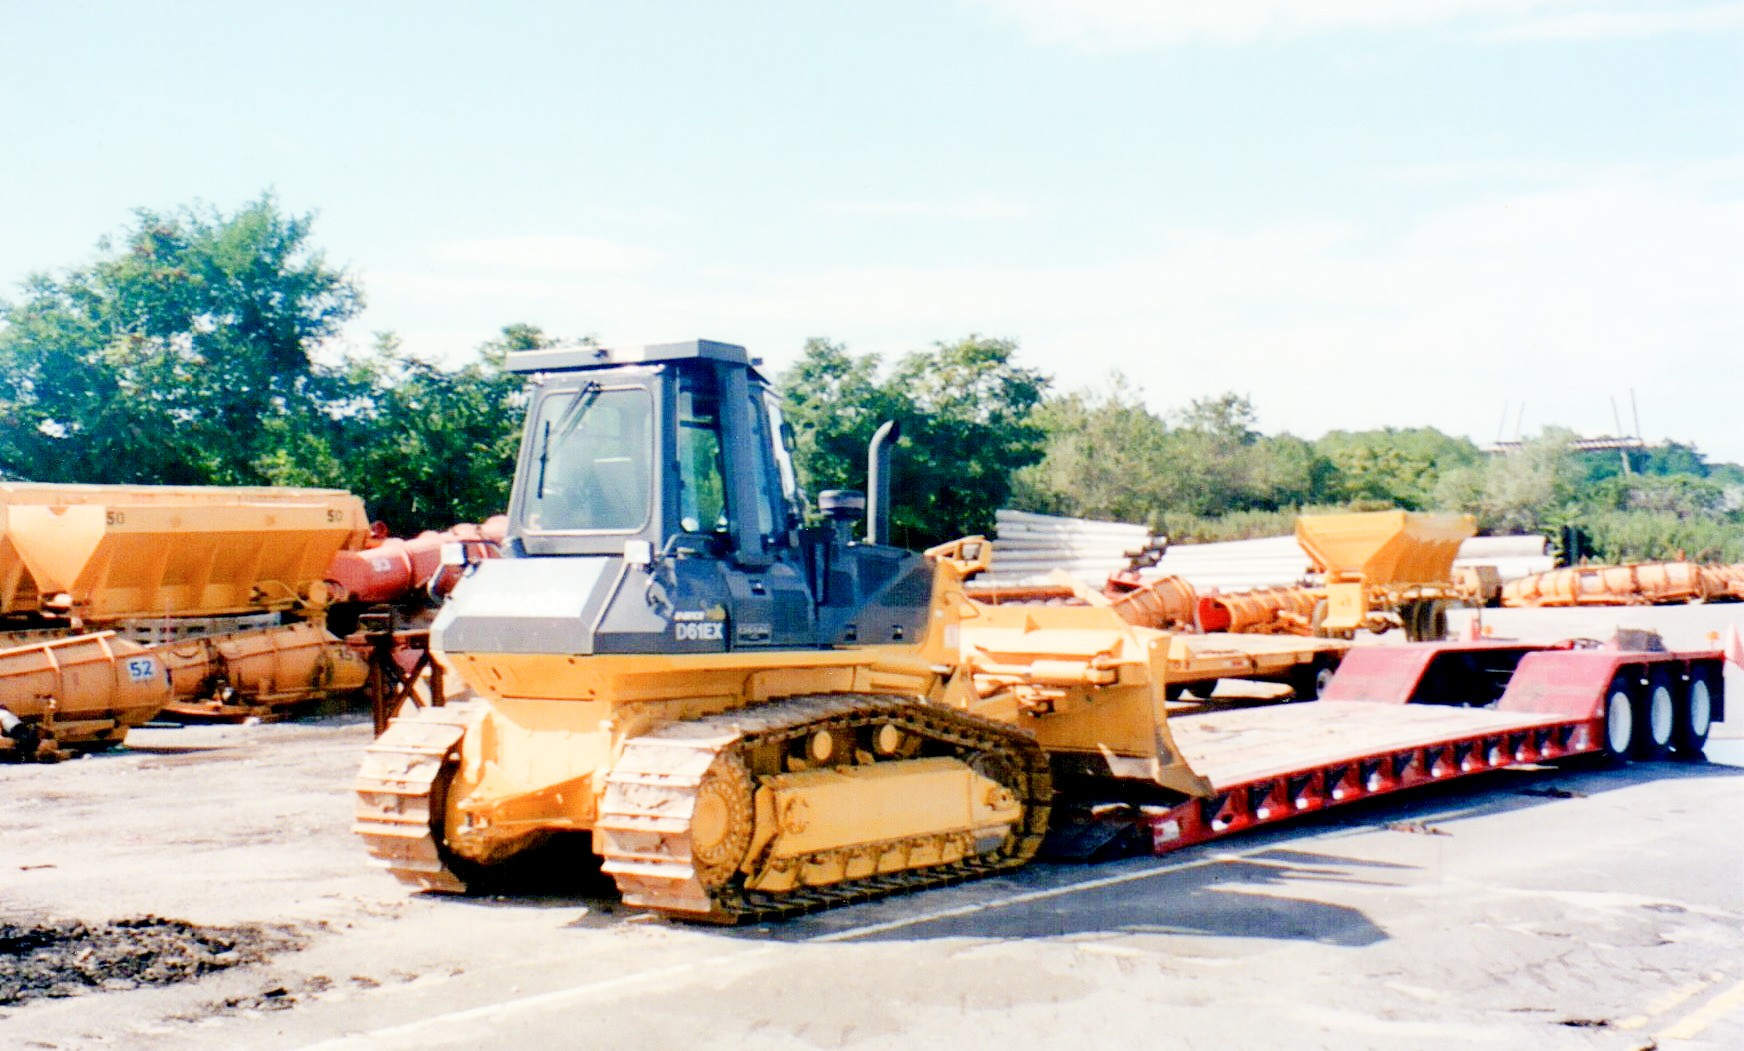 Komatsu D61EX dozer and a 2005 Rogers loboy trailer, parked next to the sand and salt spreaders.